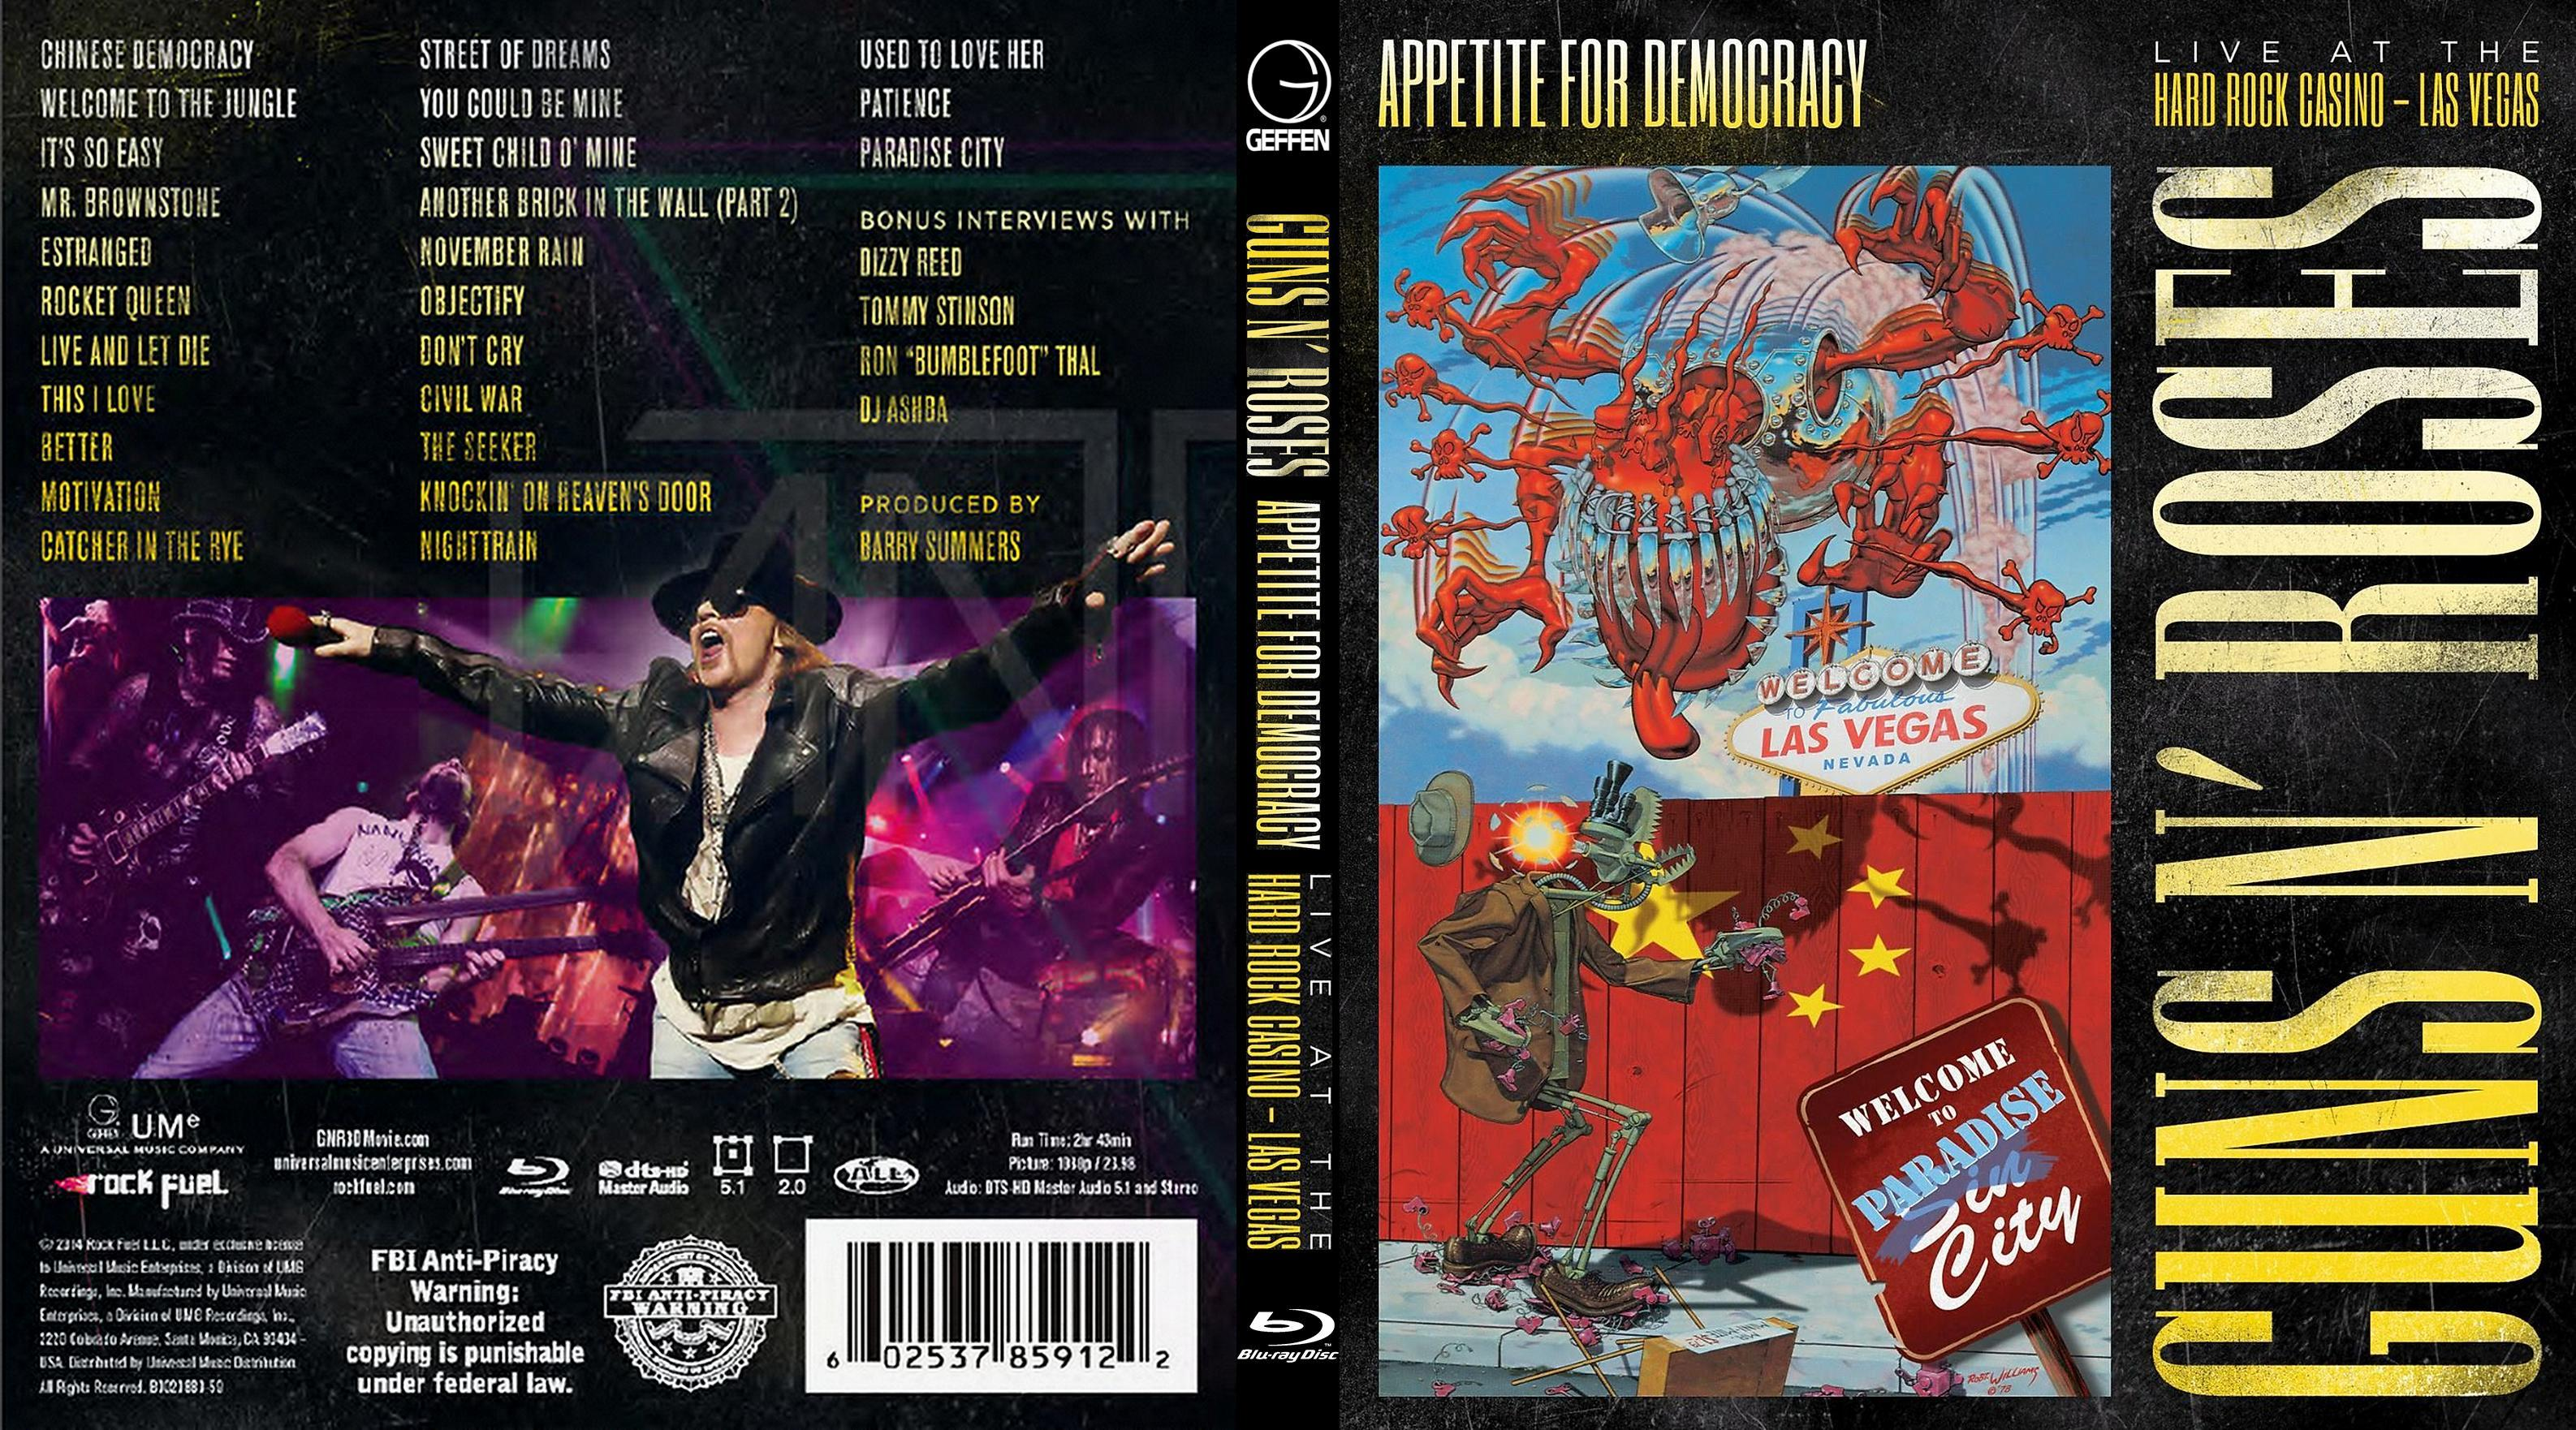 Appetite For Democracy Tour